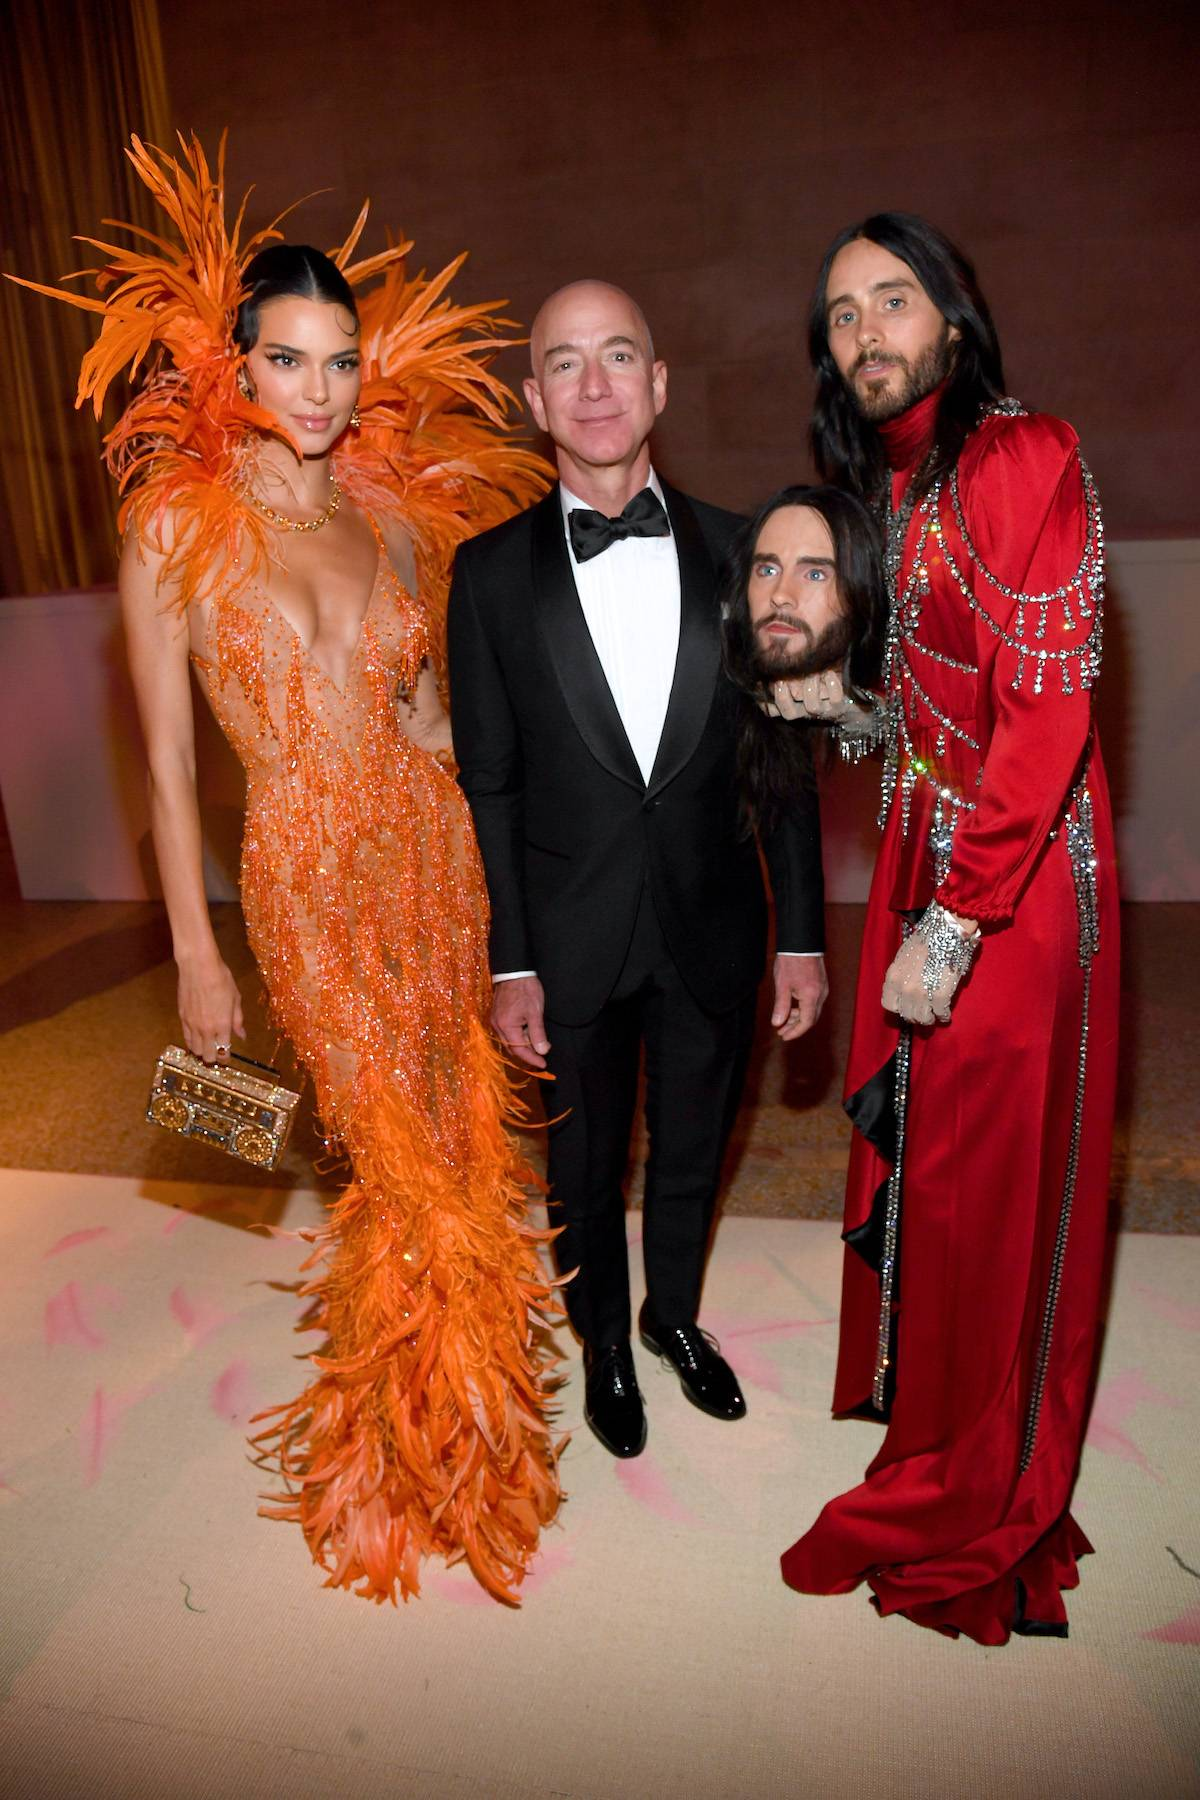 Kendall Jenner, Jeff Bezos i Jared Leto na MET Gali 2019 (Fot. Getty Images)